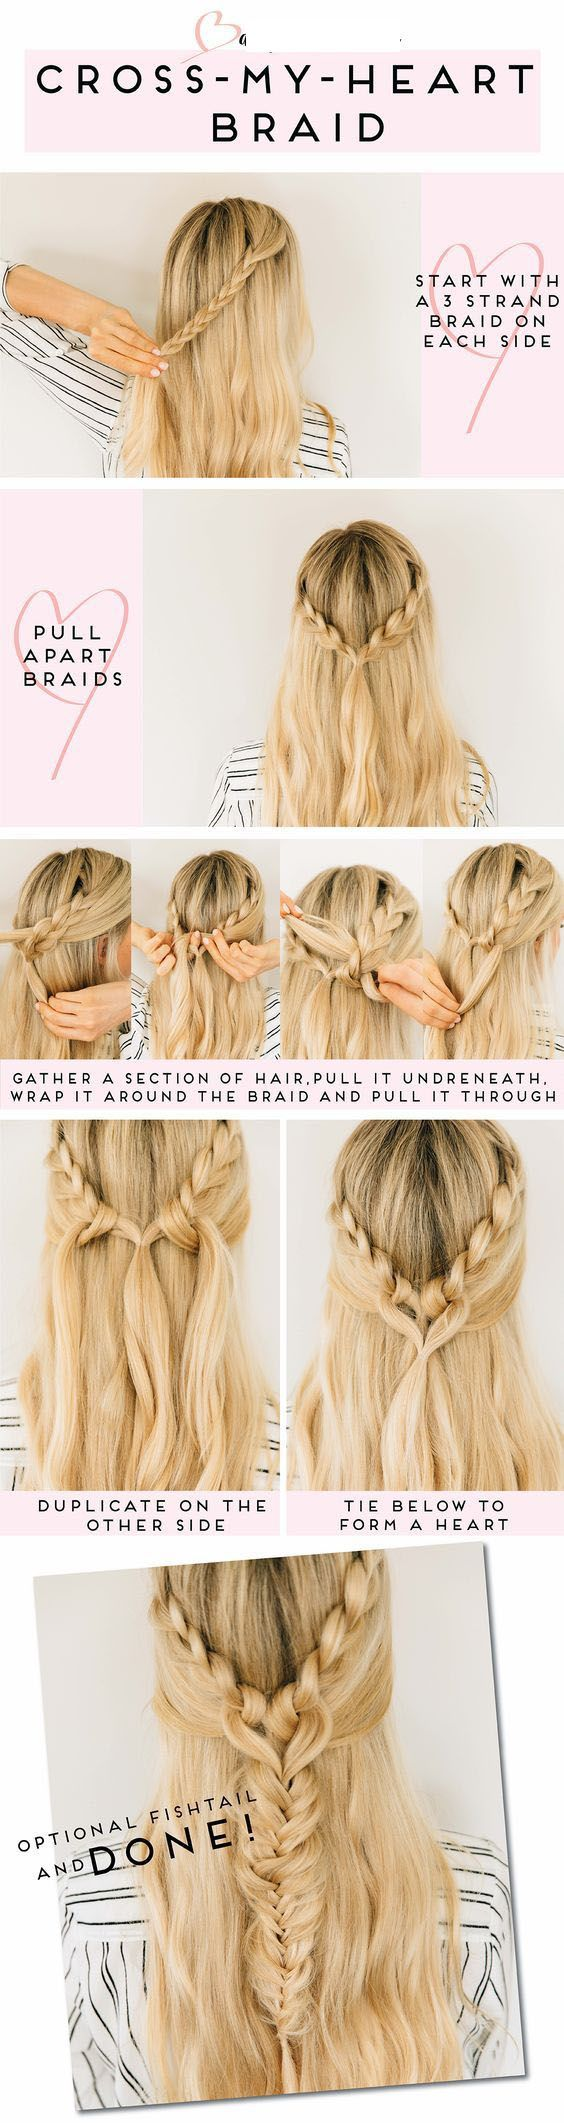 Hair braid blode hair hair styles hair color hair cut hair color